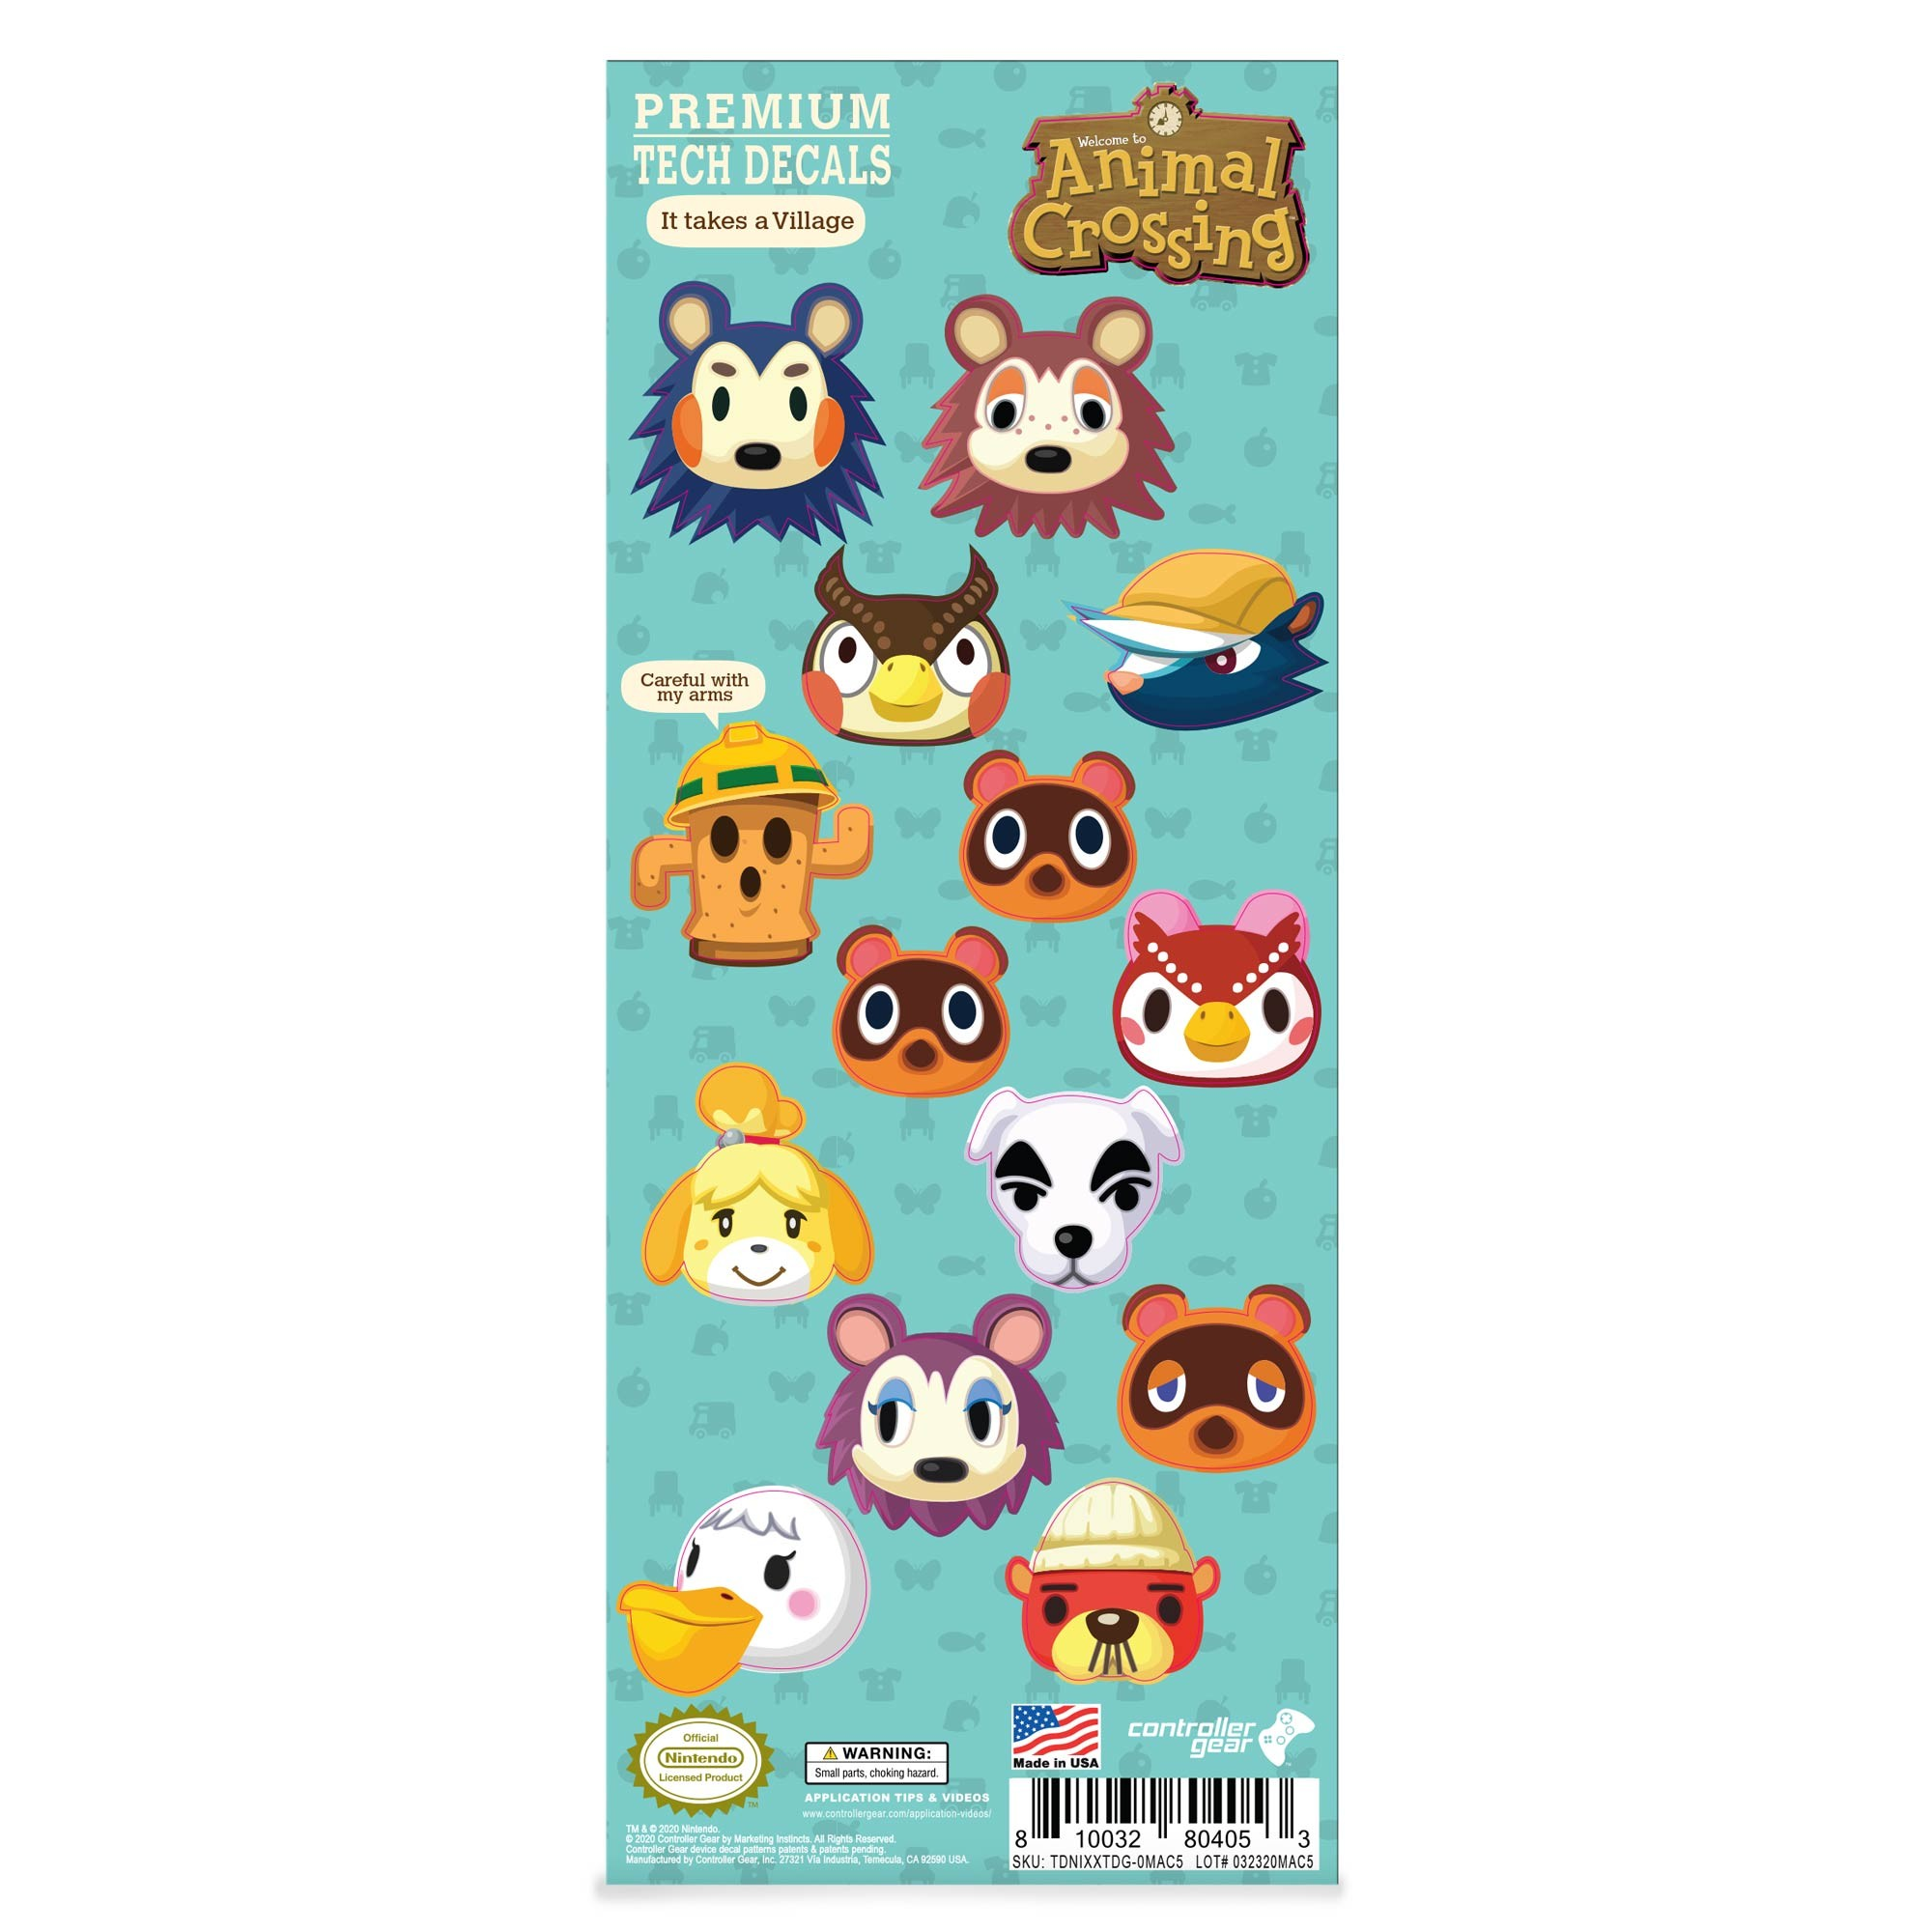 New Horizons Merch Collectors Gift Set - Sling Bag, Switch + Switch Lite Skins, Beanie, Socks, Pins - Nintendo Switch